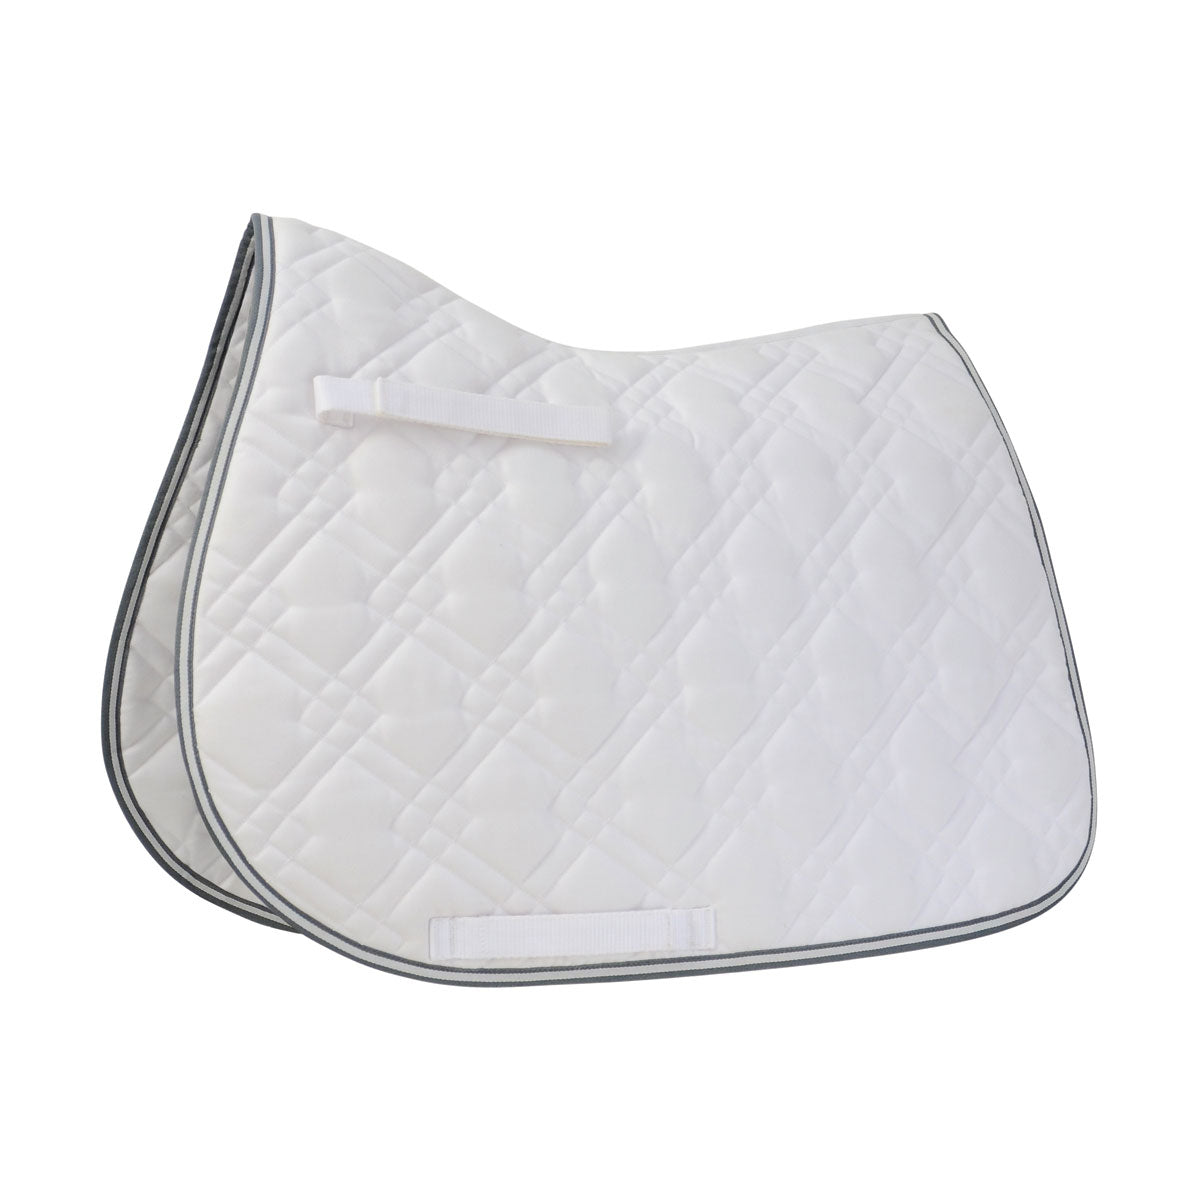 HySPEED Deluxe Pro Saddle Pad